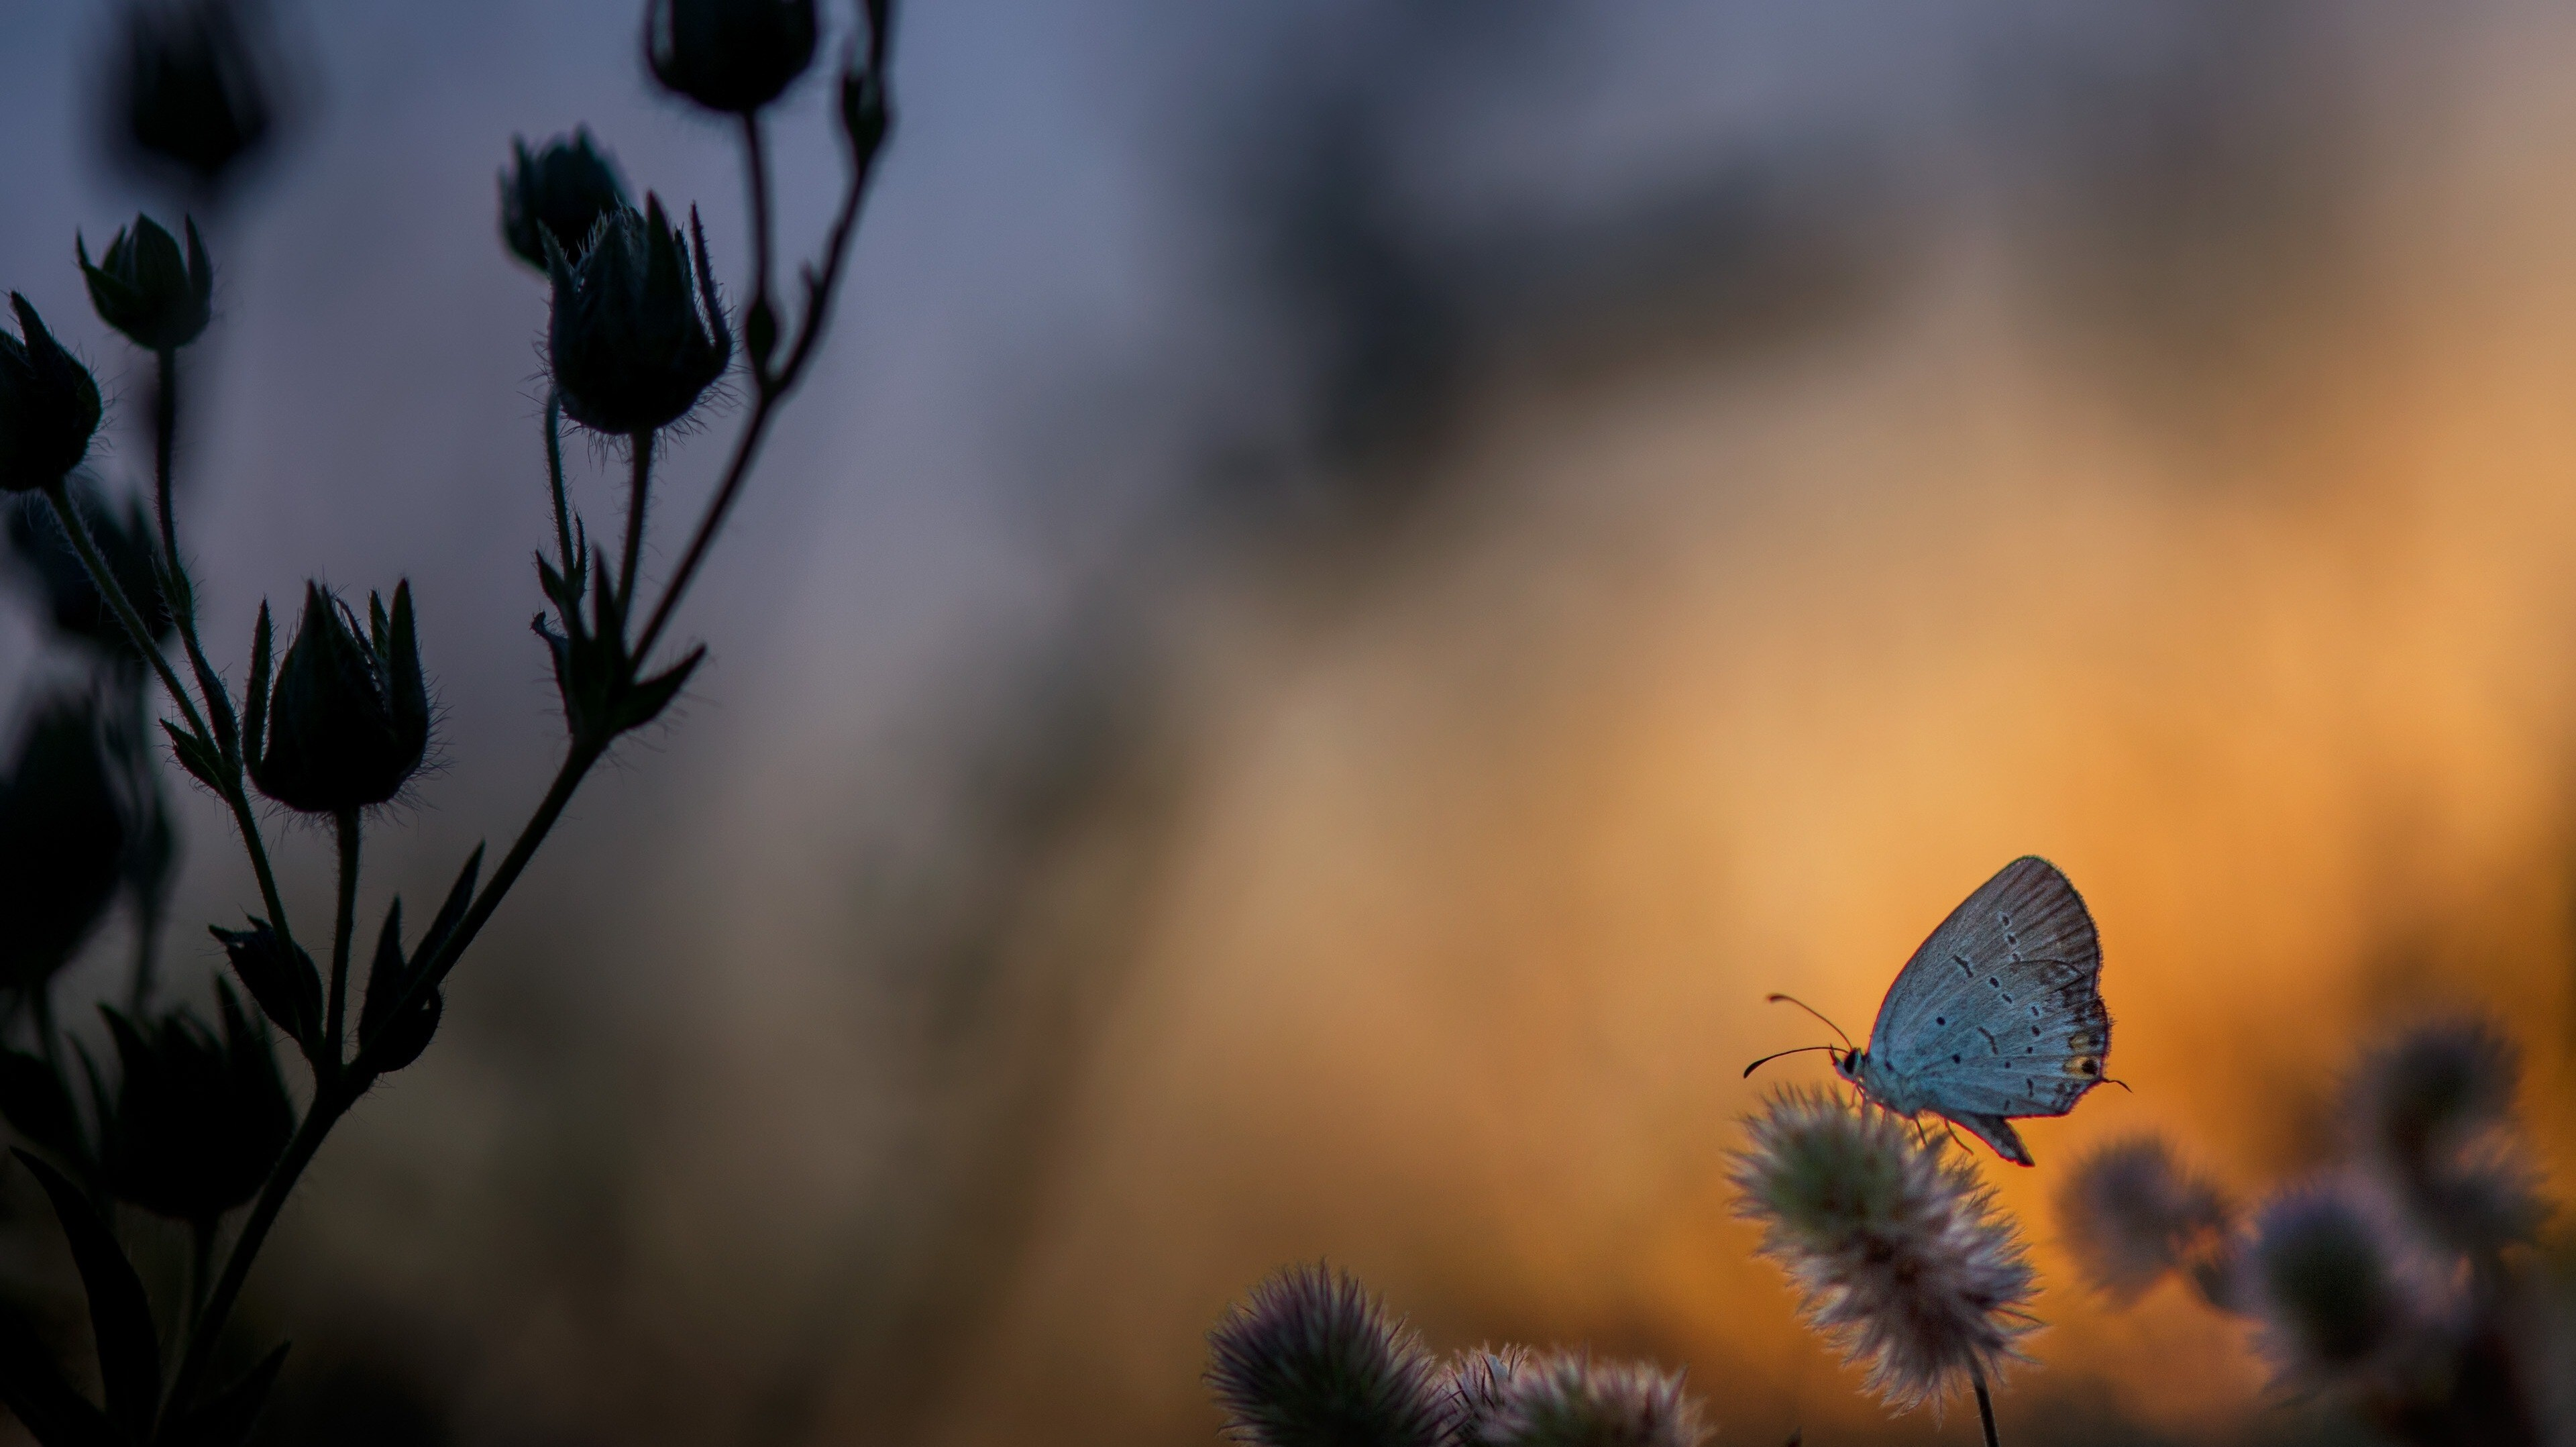 Butterfly On Plant At Sunset Time Nature 4k Wallpaper Hd Wallpapers